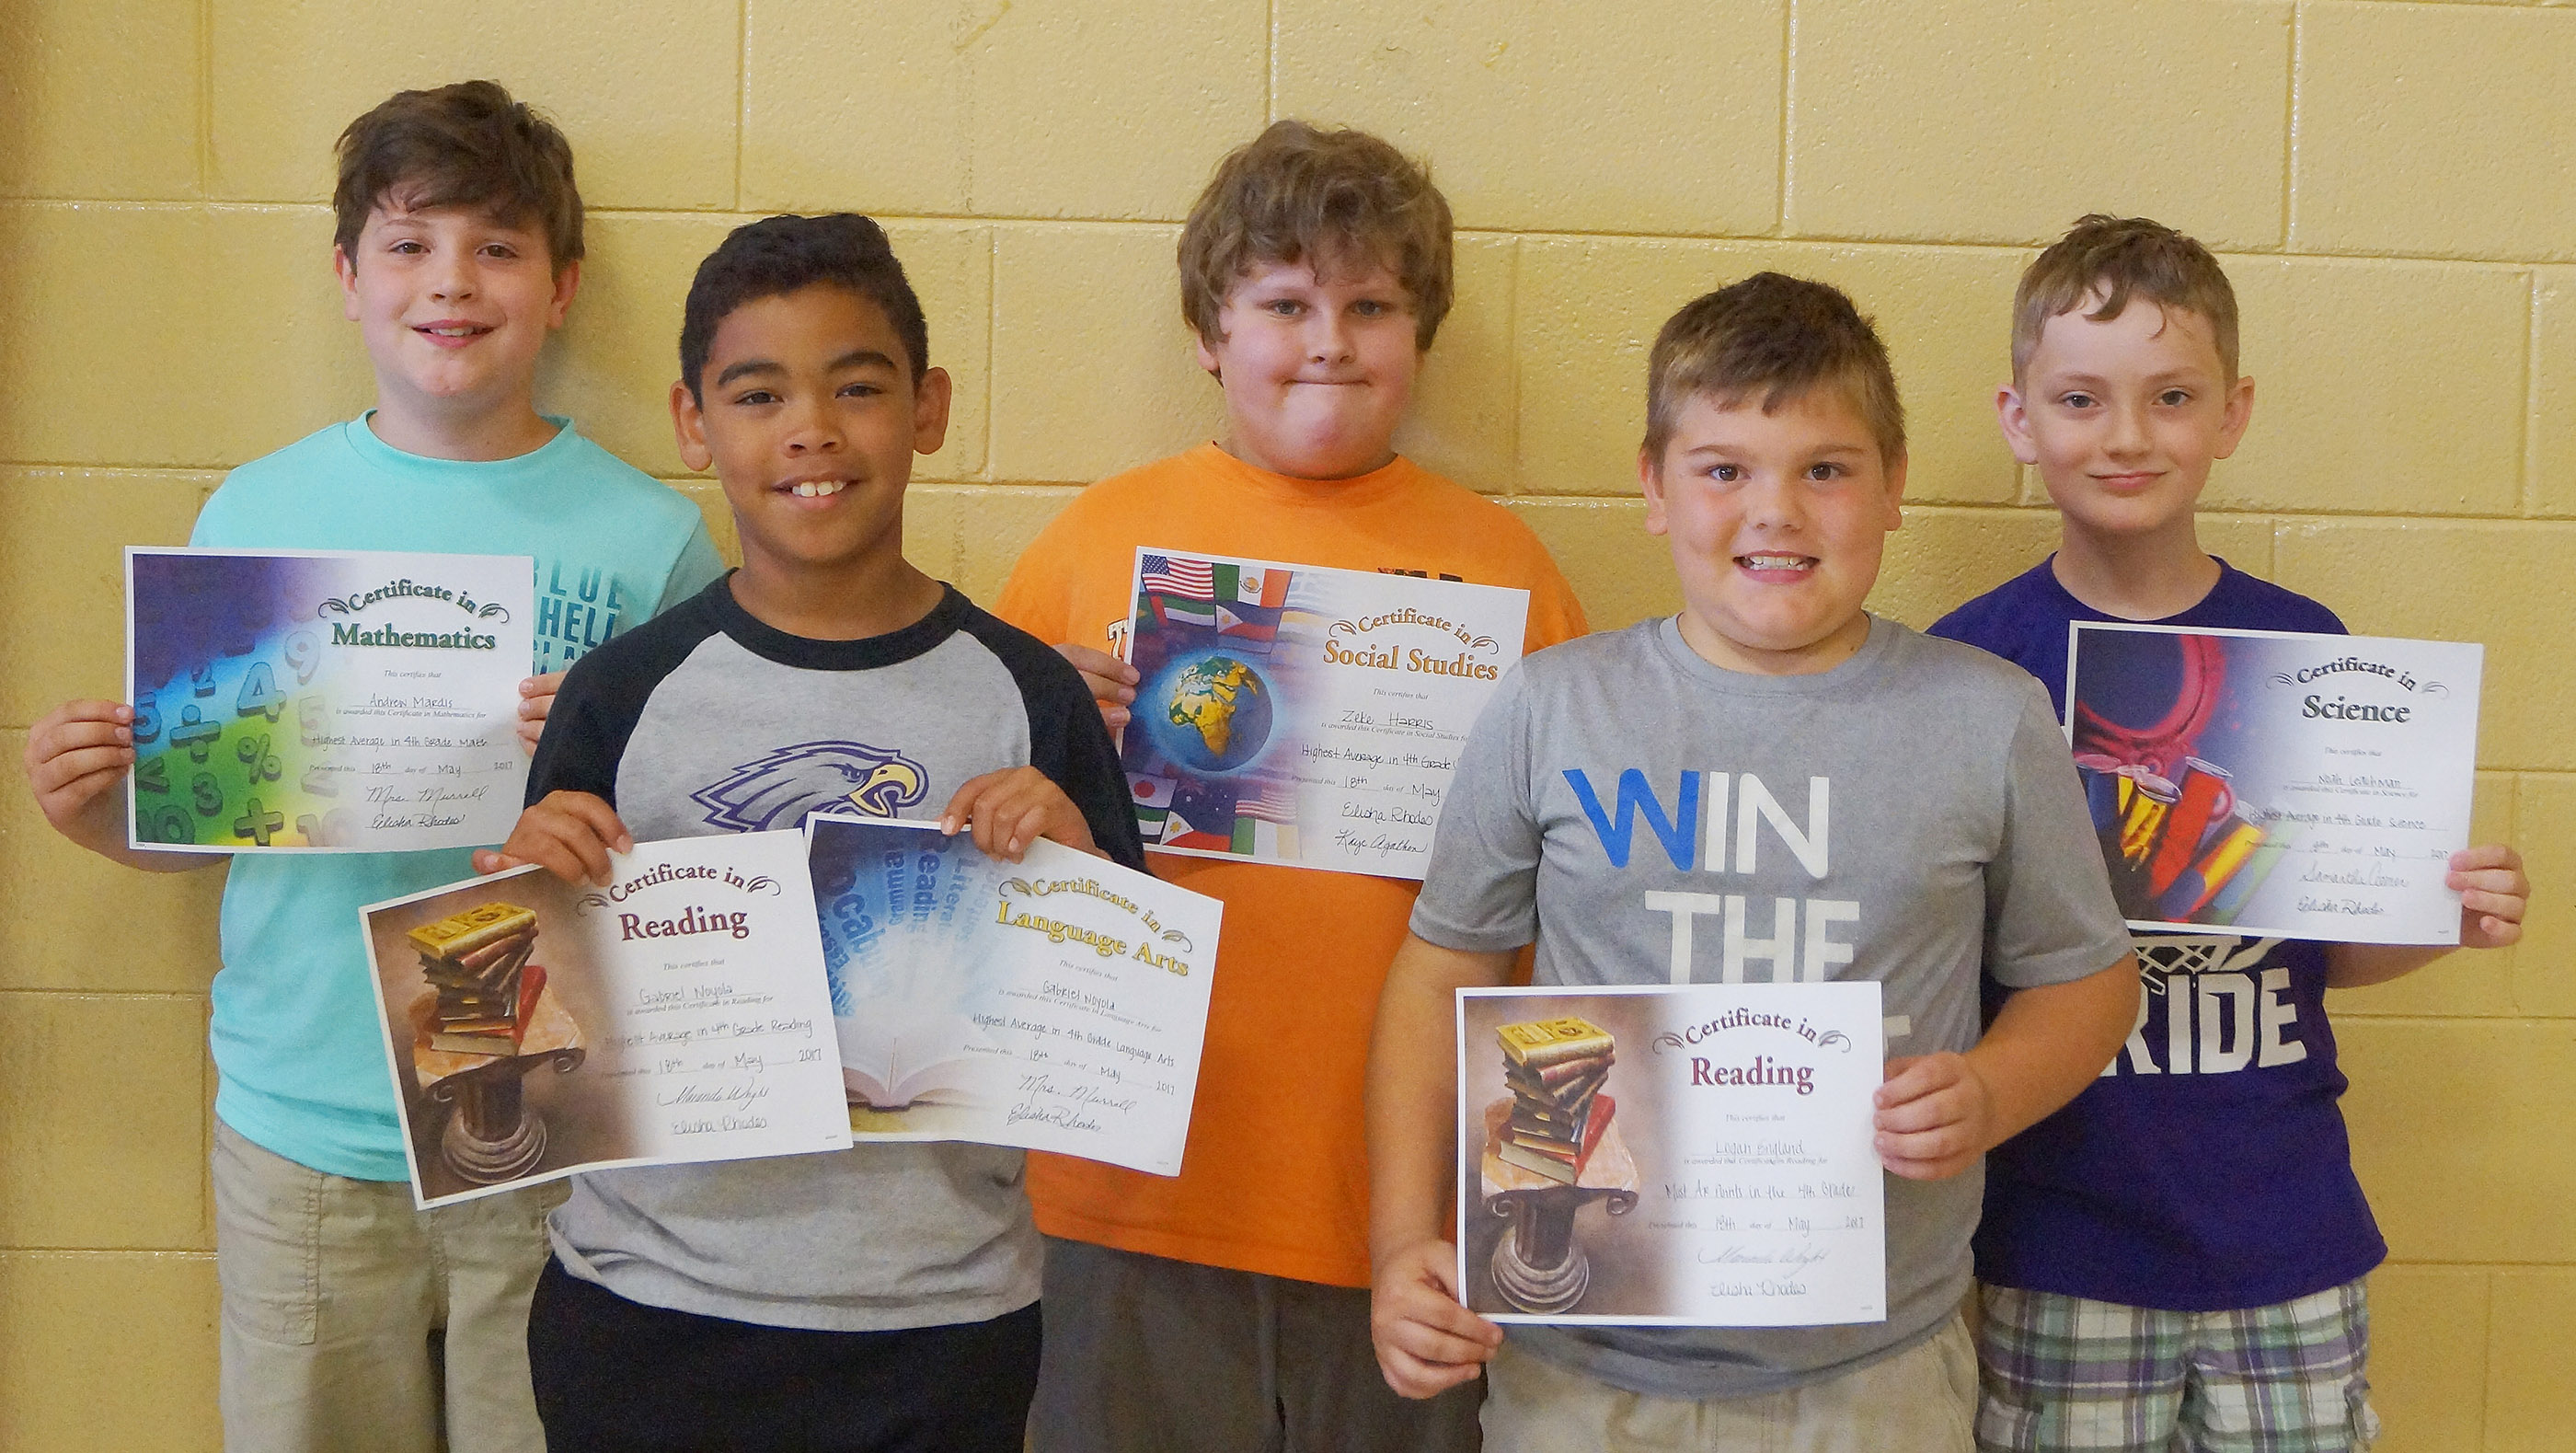 Fourth-grade subject award winners are, from left, Andrew Mardis, math; Gabriel Noyola, language arts and reading; Zeke Harris, social studies; Logan England, accelerated reader; and Noah Leachman, science.